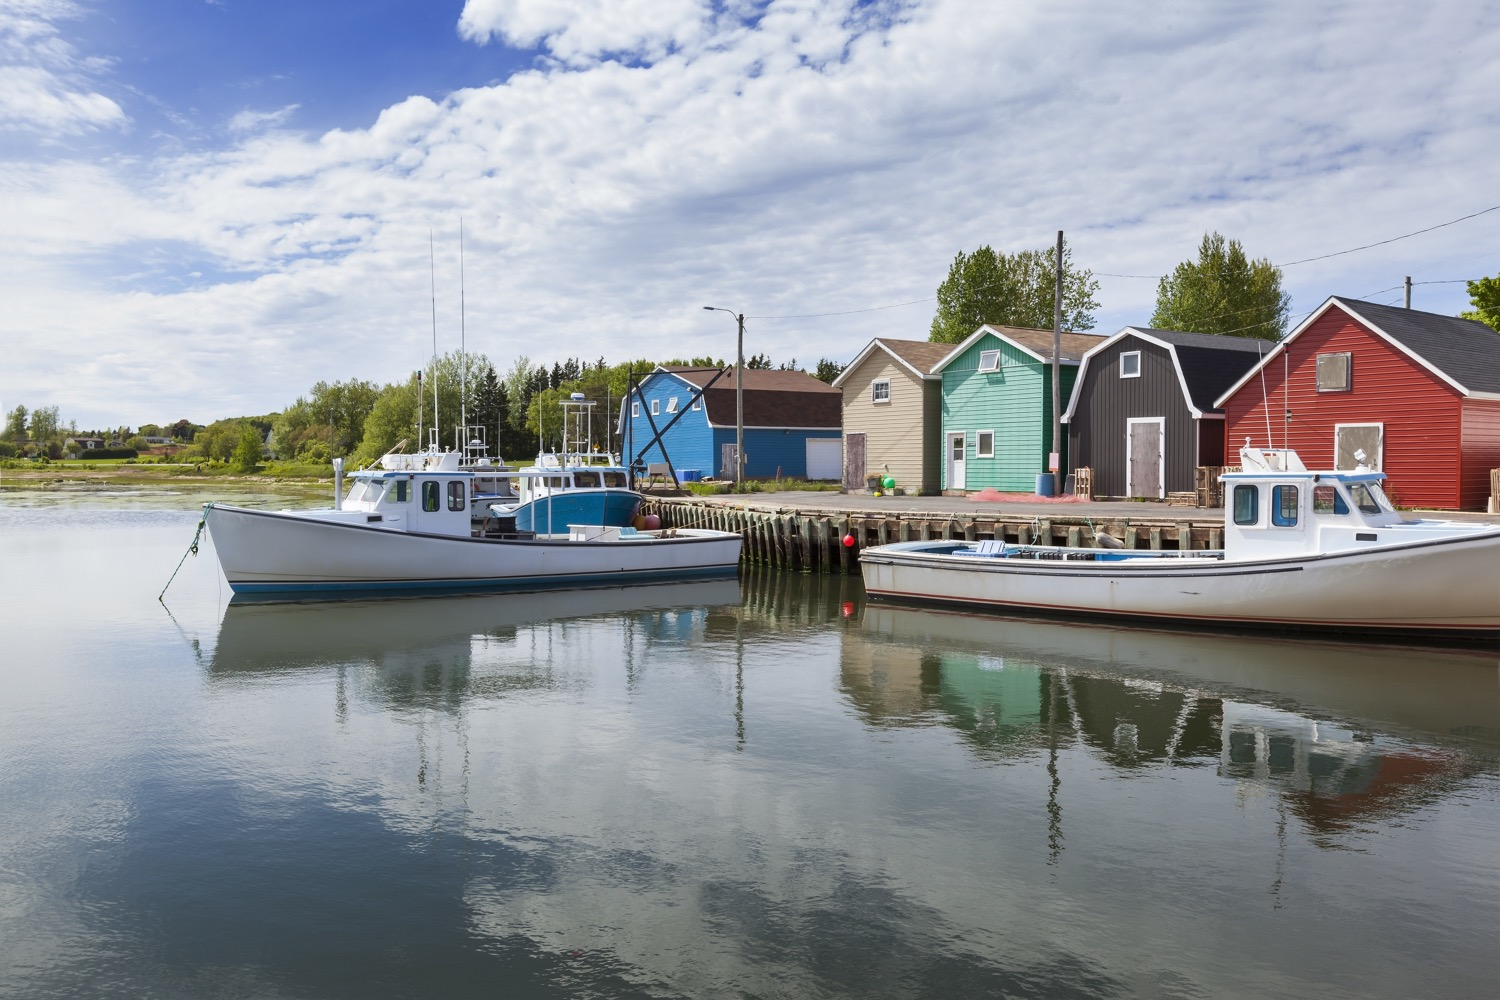 Two small boats in harbour in PEI.